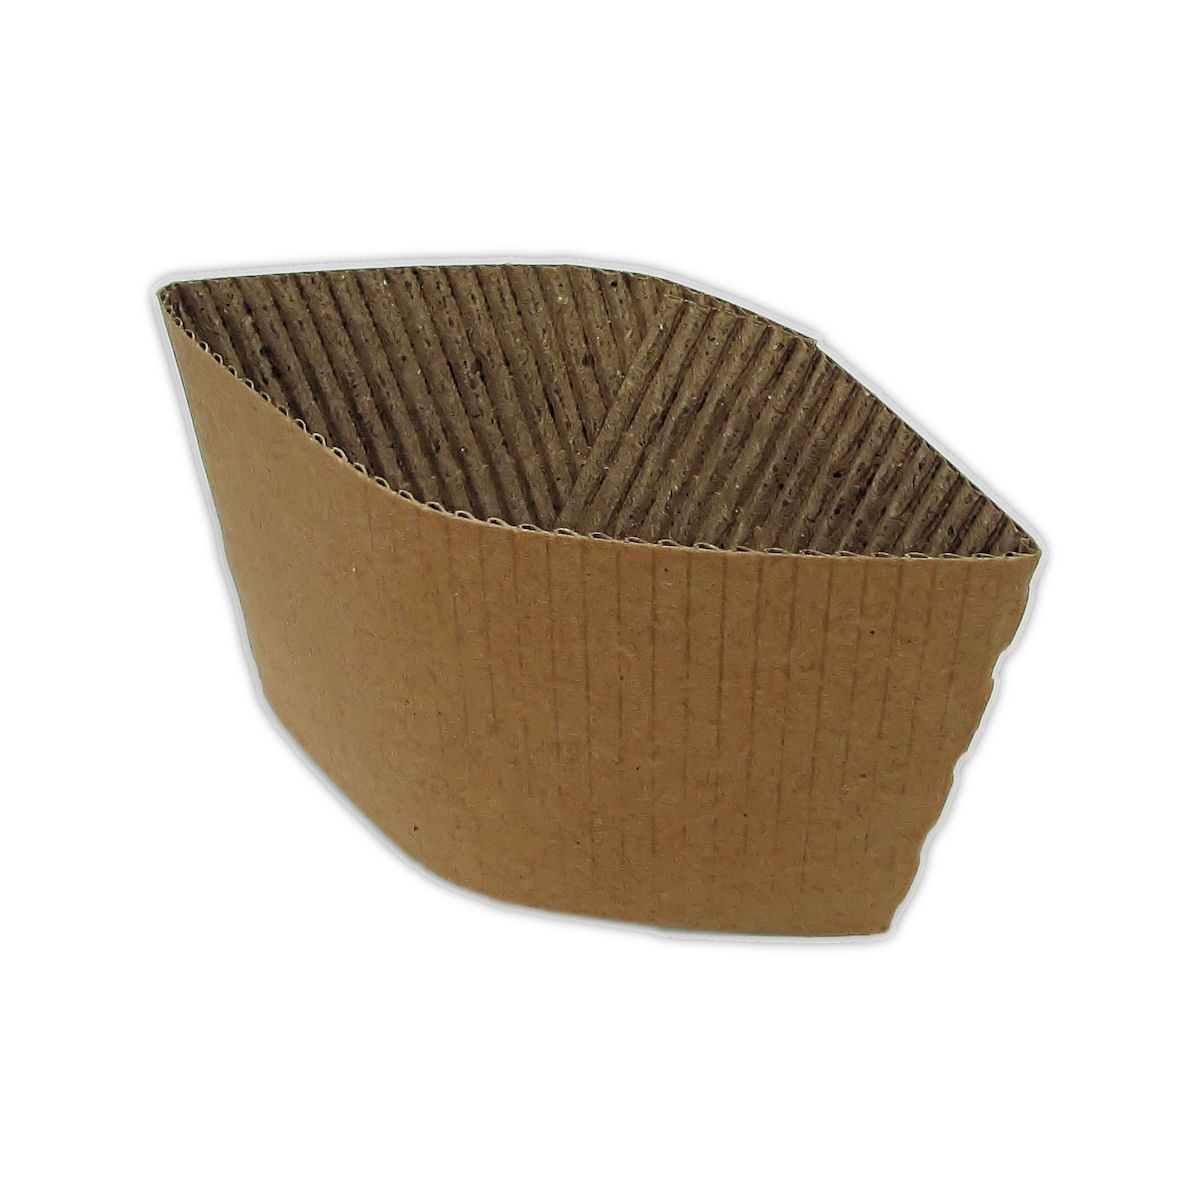 CPCL3115 - 12/16oz Cup Collars Brown x 1000